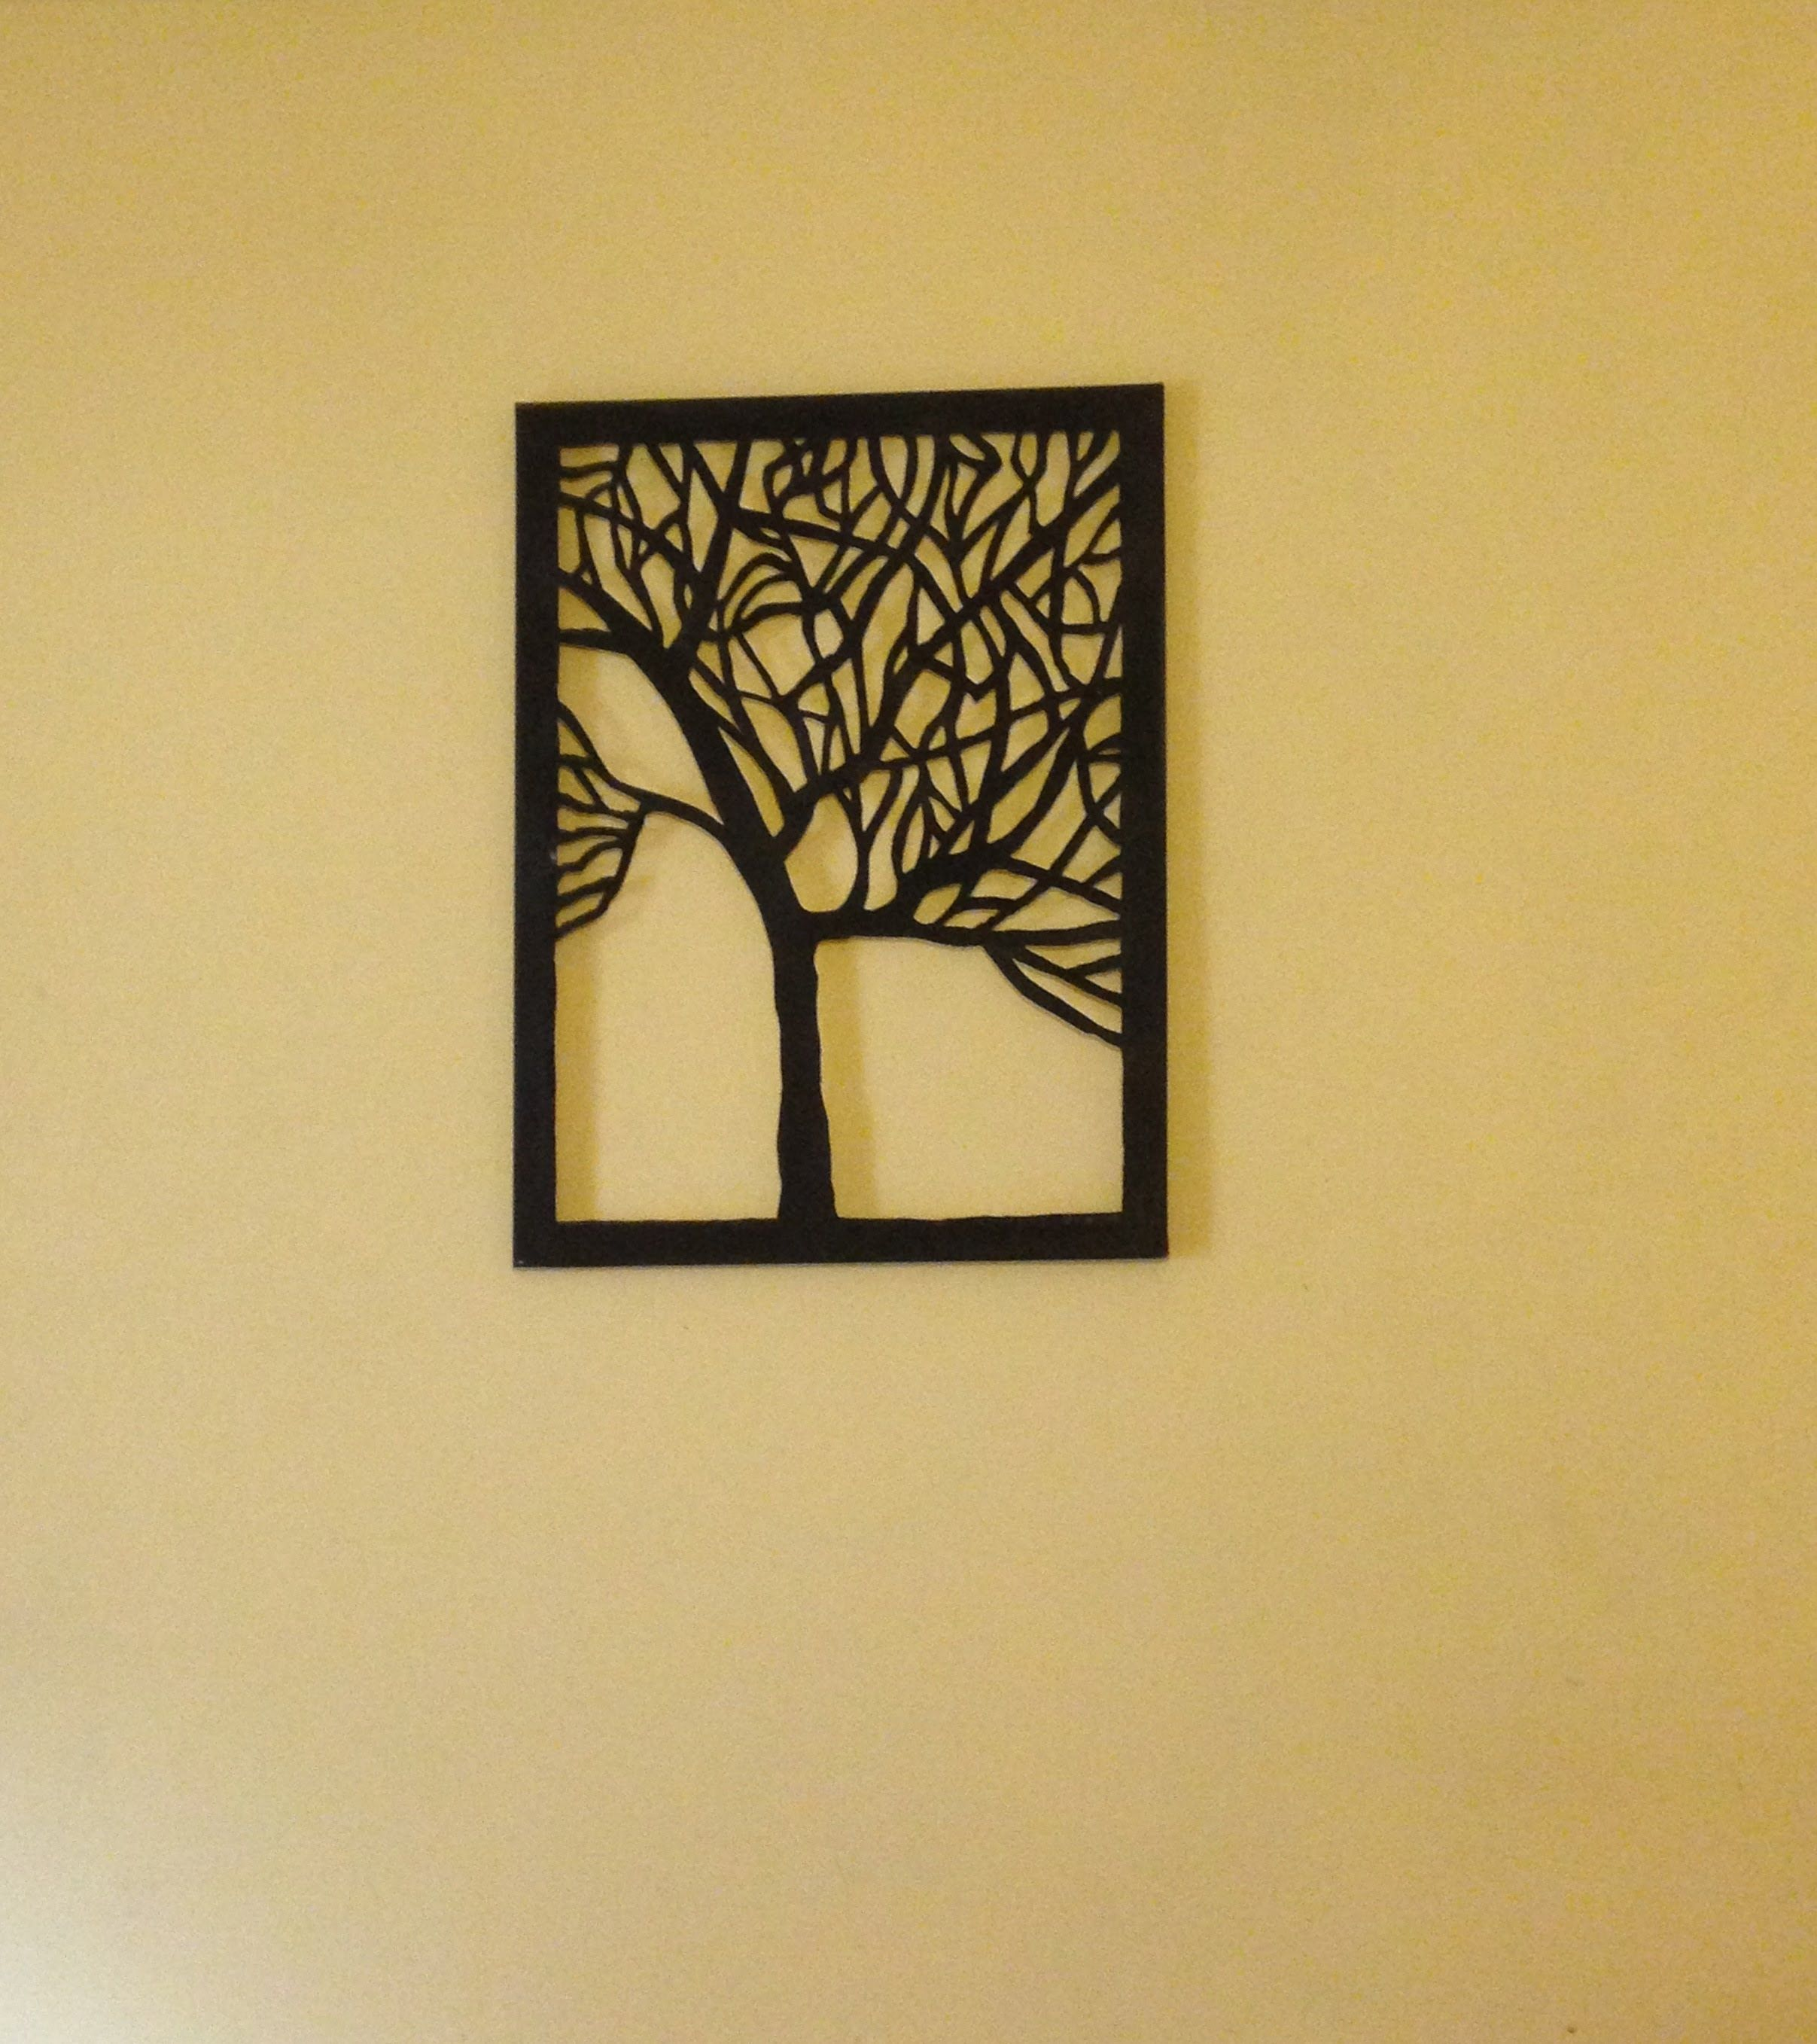 Amazing DIY canvas tree cut-out (wall art home decor idea) | DIY ...